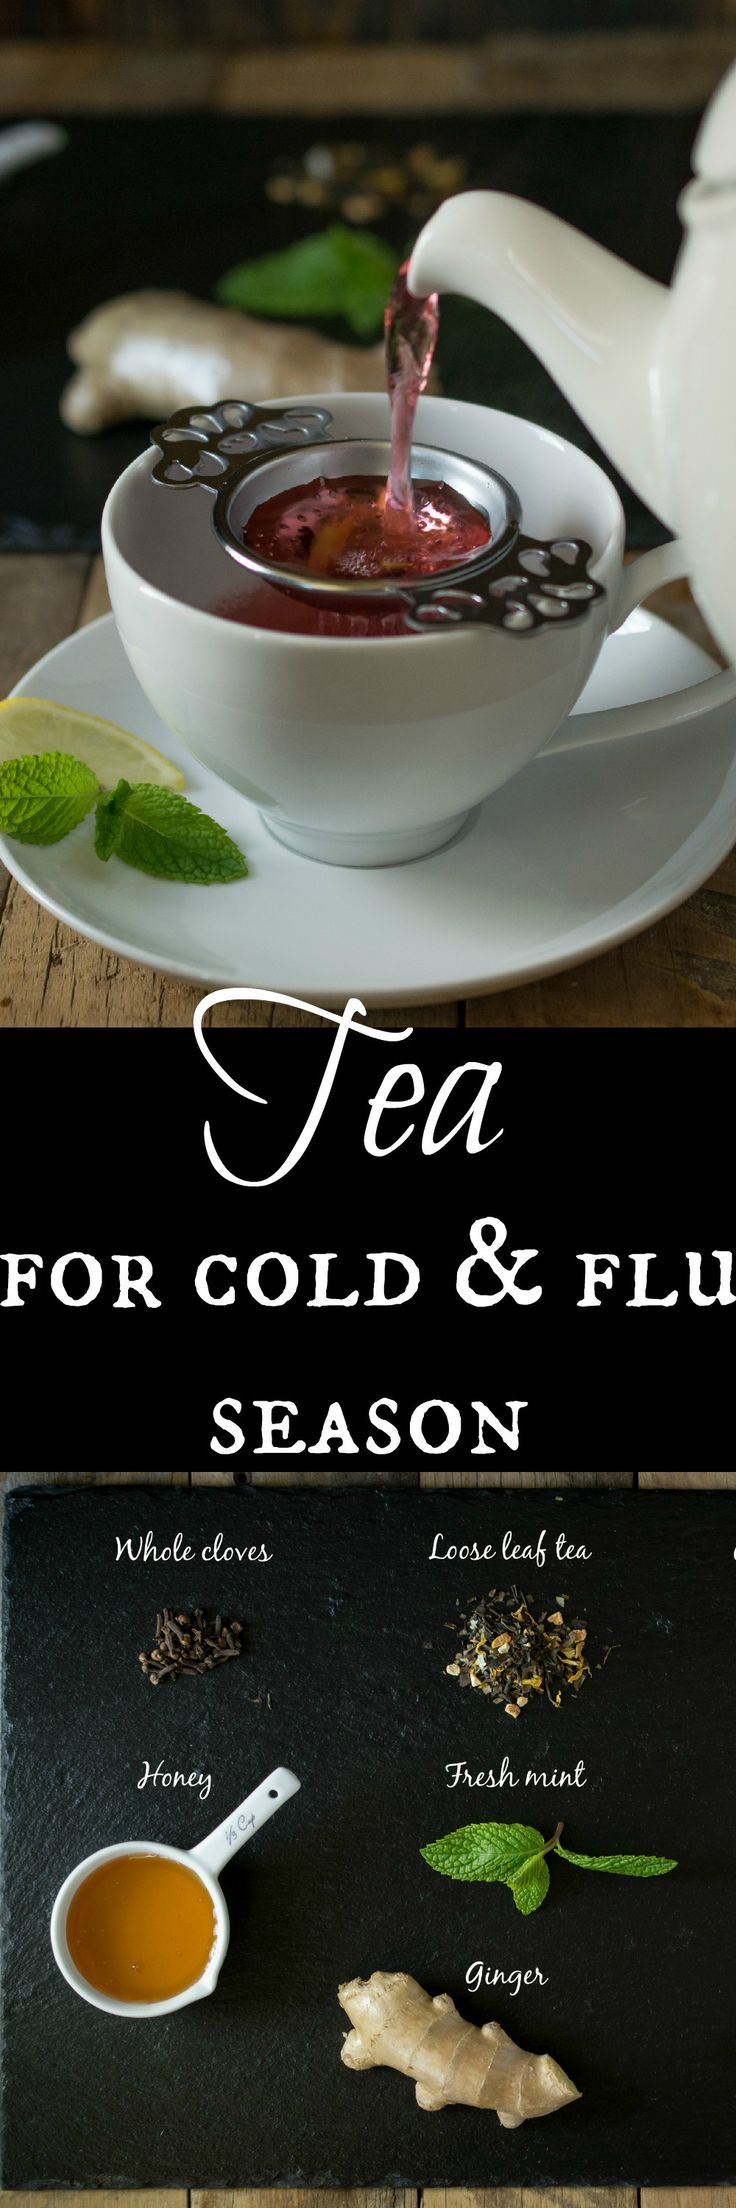 Tea for cold & flu season - My guide to natural ingredients you can add to tea to help you feel better. The Ultimate Pinterest Party, Week 75